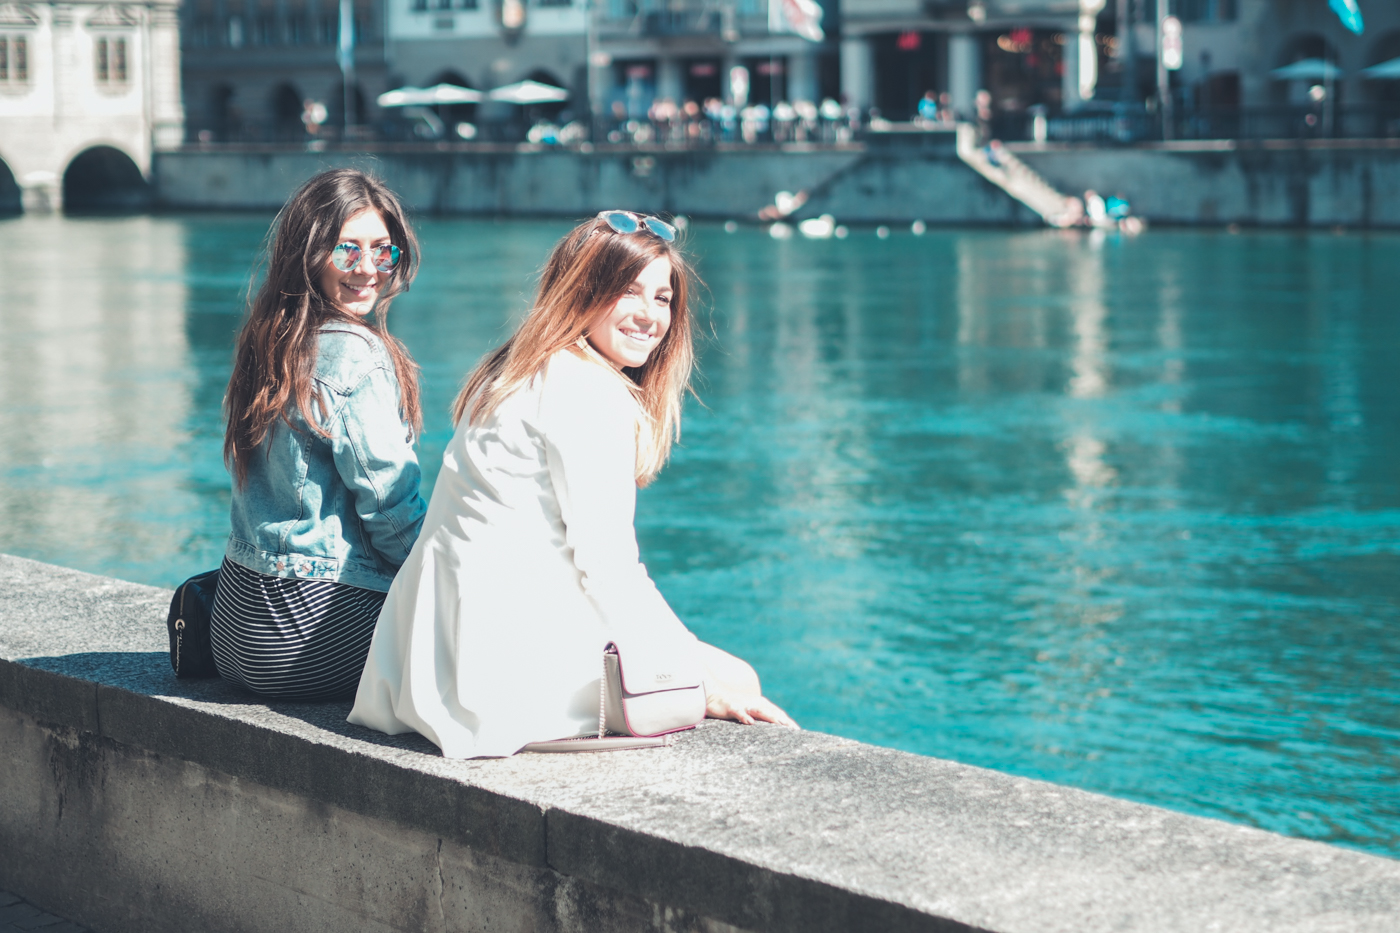 SWITZERLAND: ZURICH & BRANDY MELVILLE 1